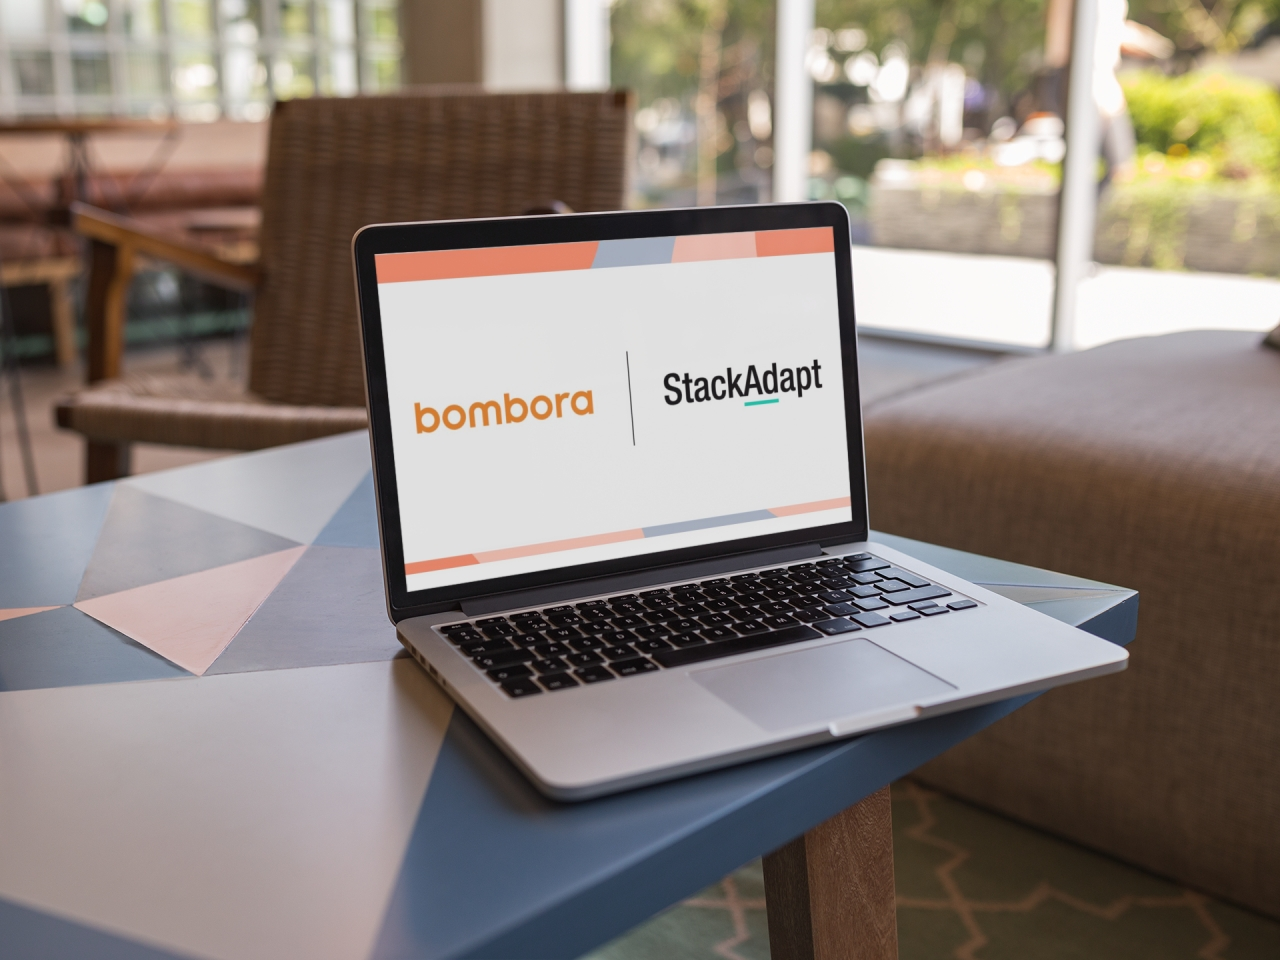 StackAdapt Teams Up With Bombora To Enhance Audience Solutions Offering